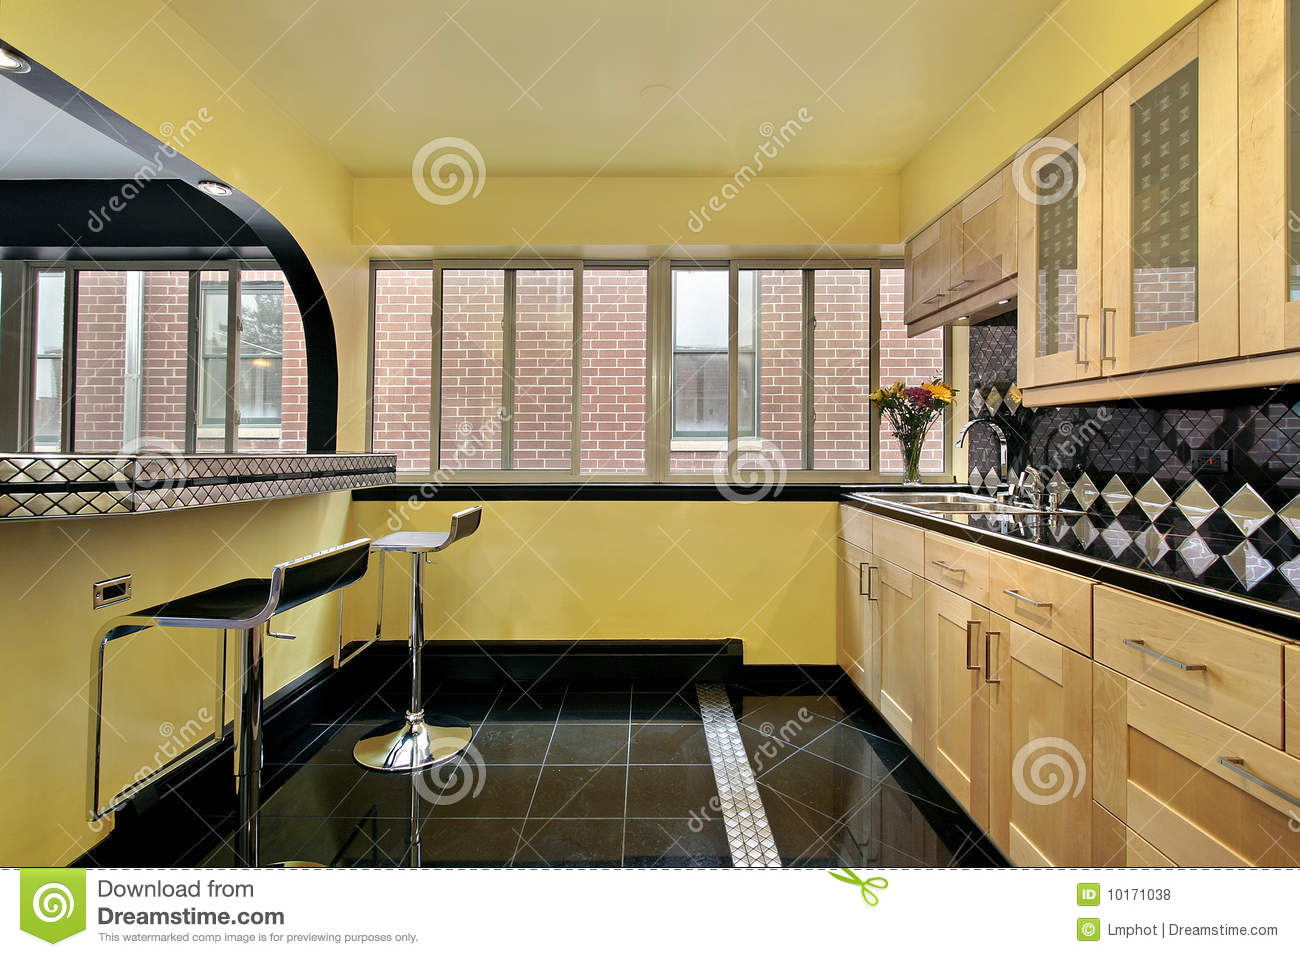 kitchen with yellow walls royalty free stock photos image 10171038